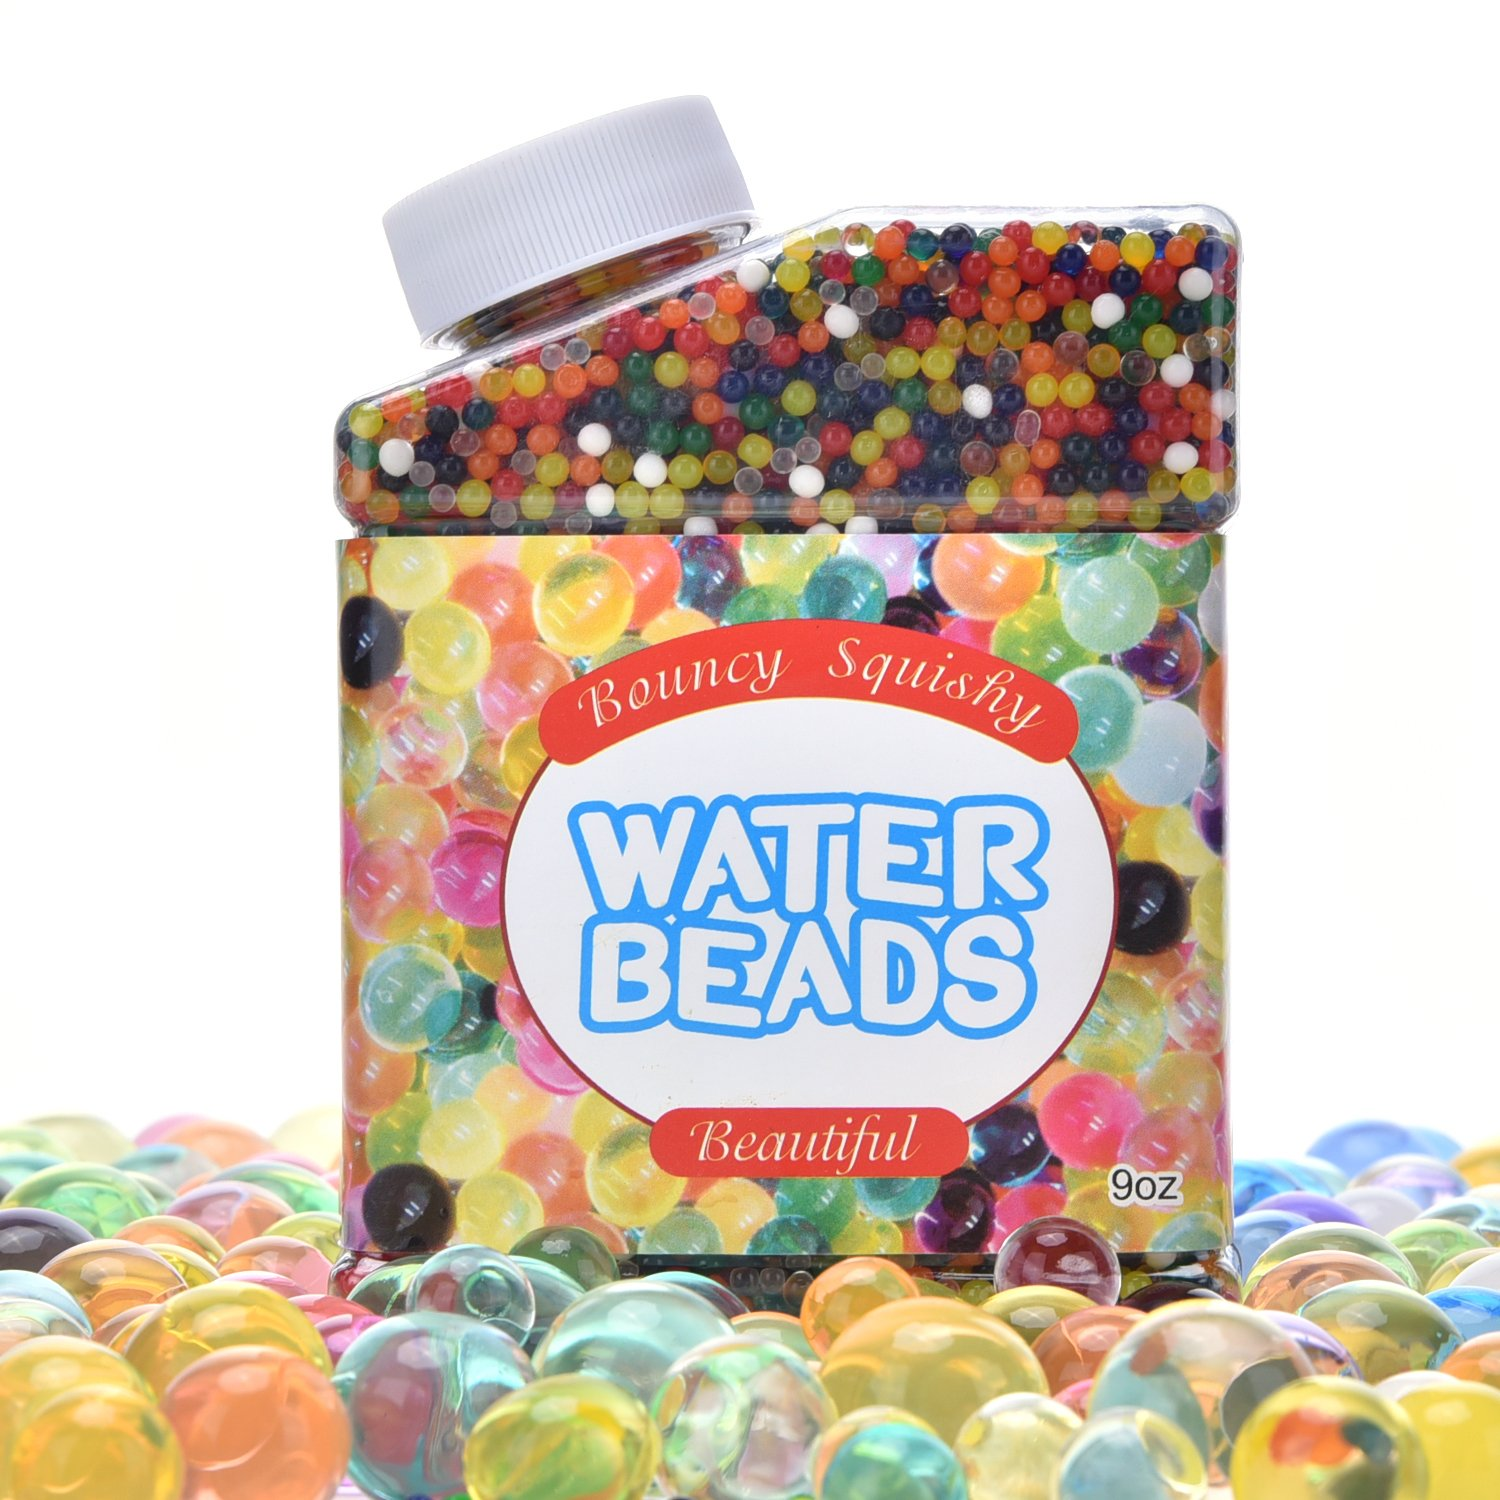 LOAMO Water Beads Rainbow Mix Jelly Growing Gel Balls for Kids Tactile Sensory Toys Vase Filler Wedding Centerpiece Home Decoration Plants 50 000 Beads